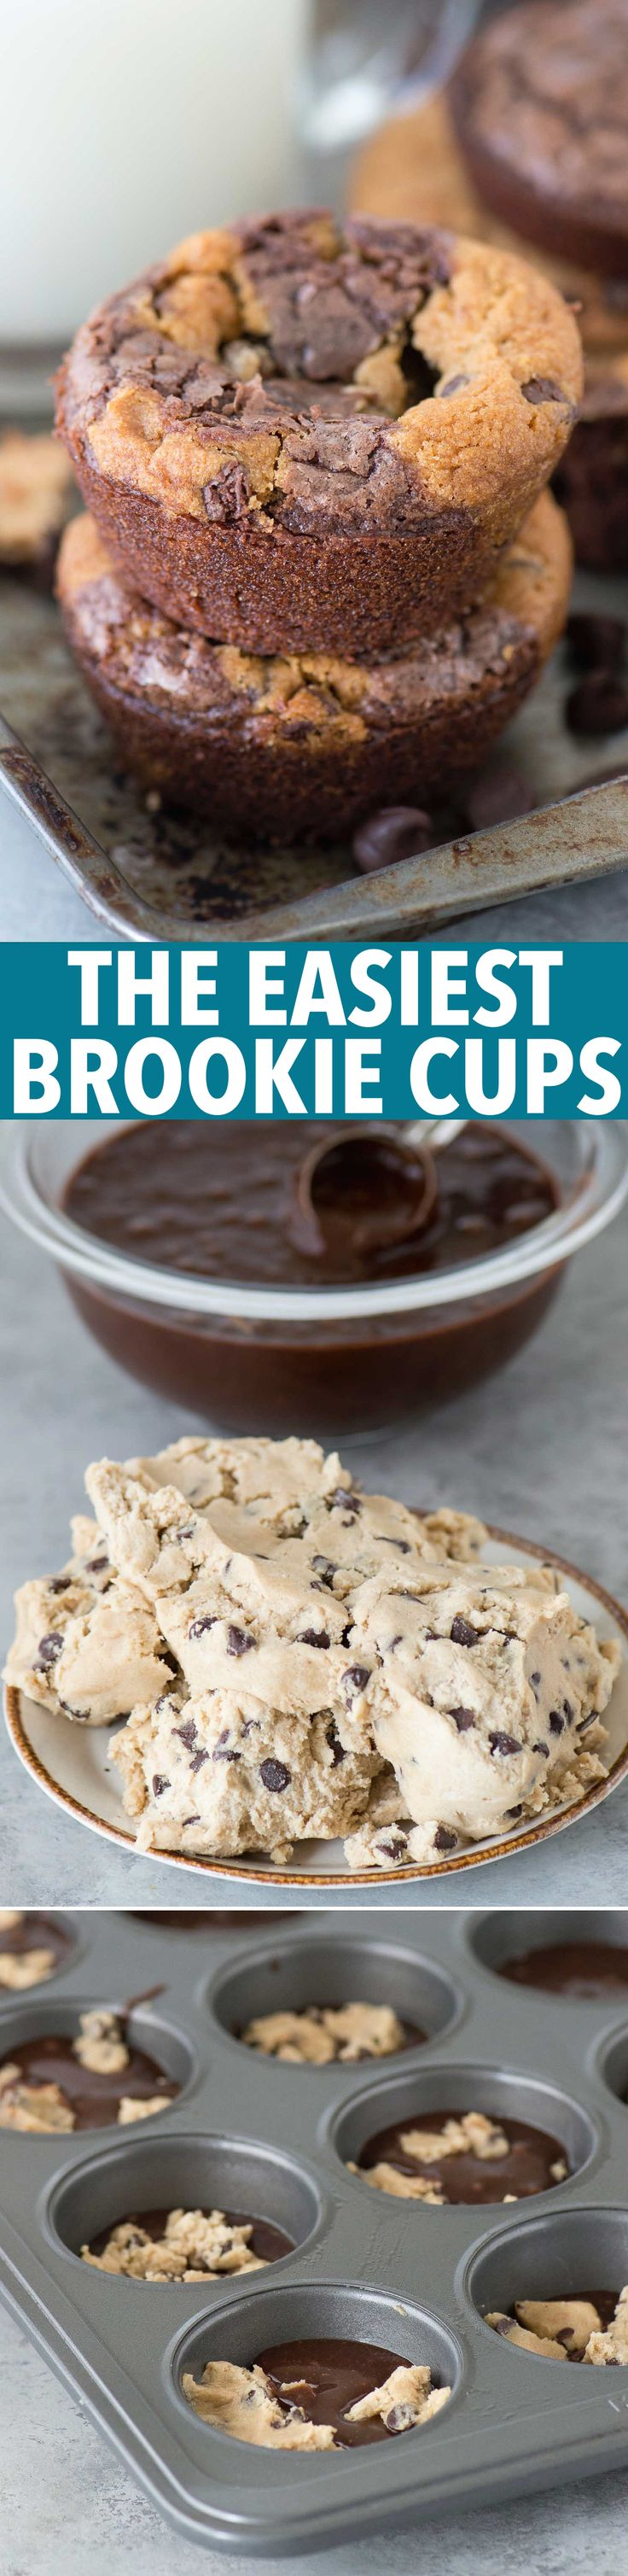 The easiest brookie cups recipe! It's a brownie and a cookie baked in a muffin…